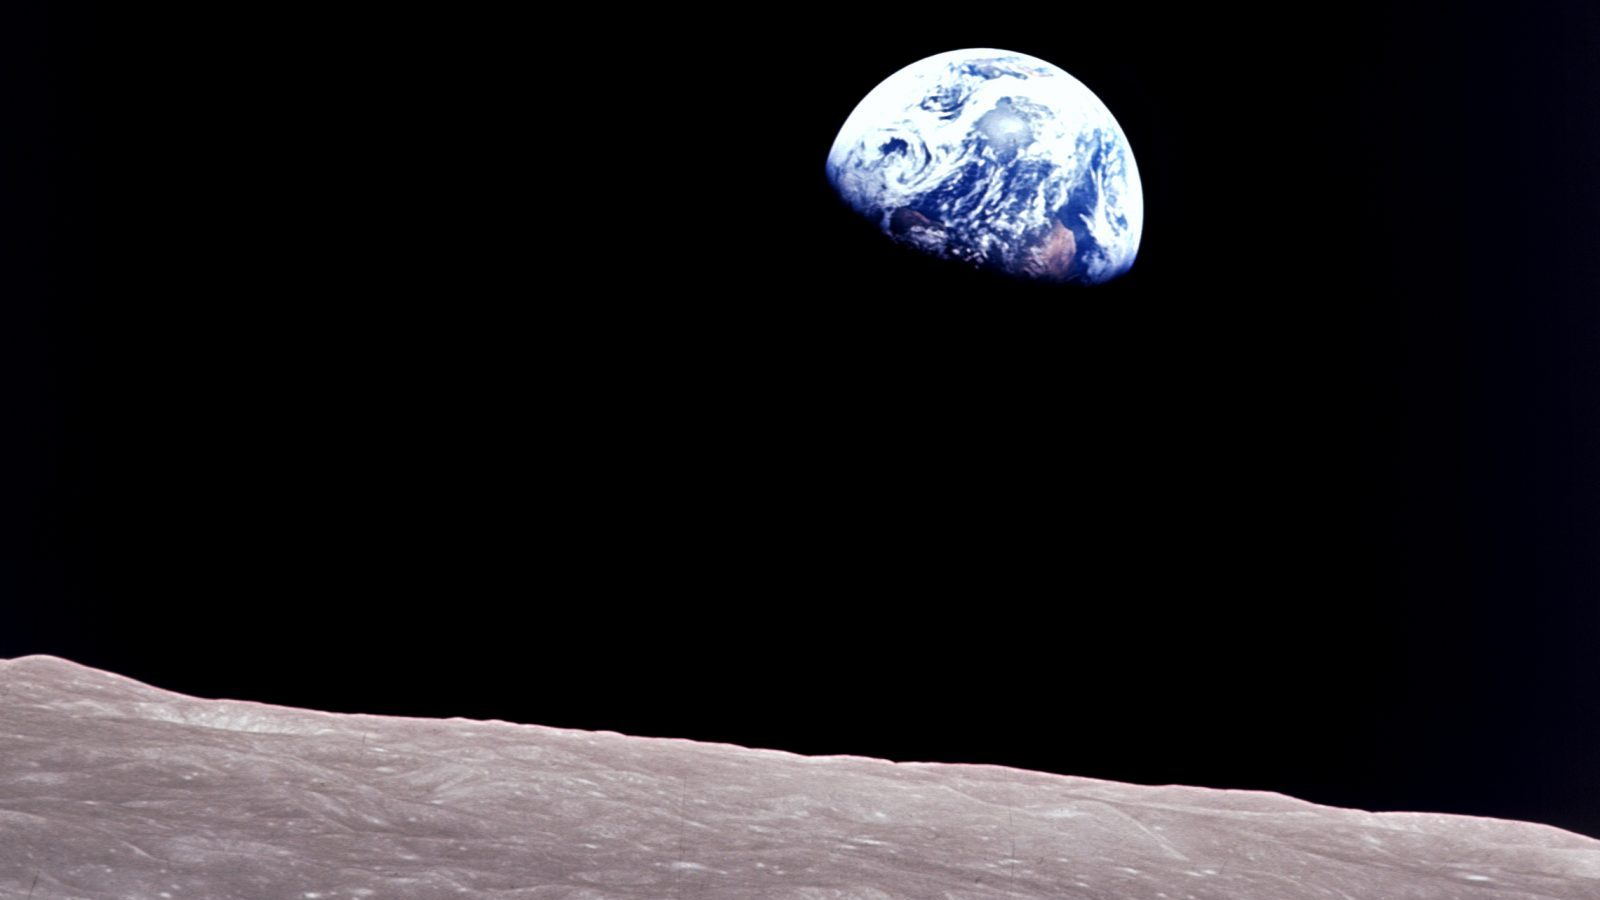 Taken aboard Apollo 8 by Bill Anders, this iconic picture shows Earth peeking out from beyond the lunar surface as the first crewed spacecraft circumnavigated the moon, with astronauts Anders, Frank Borman, and Jim Lovell aboard.